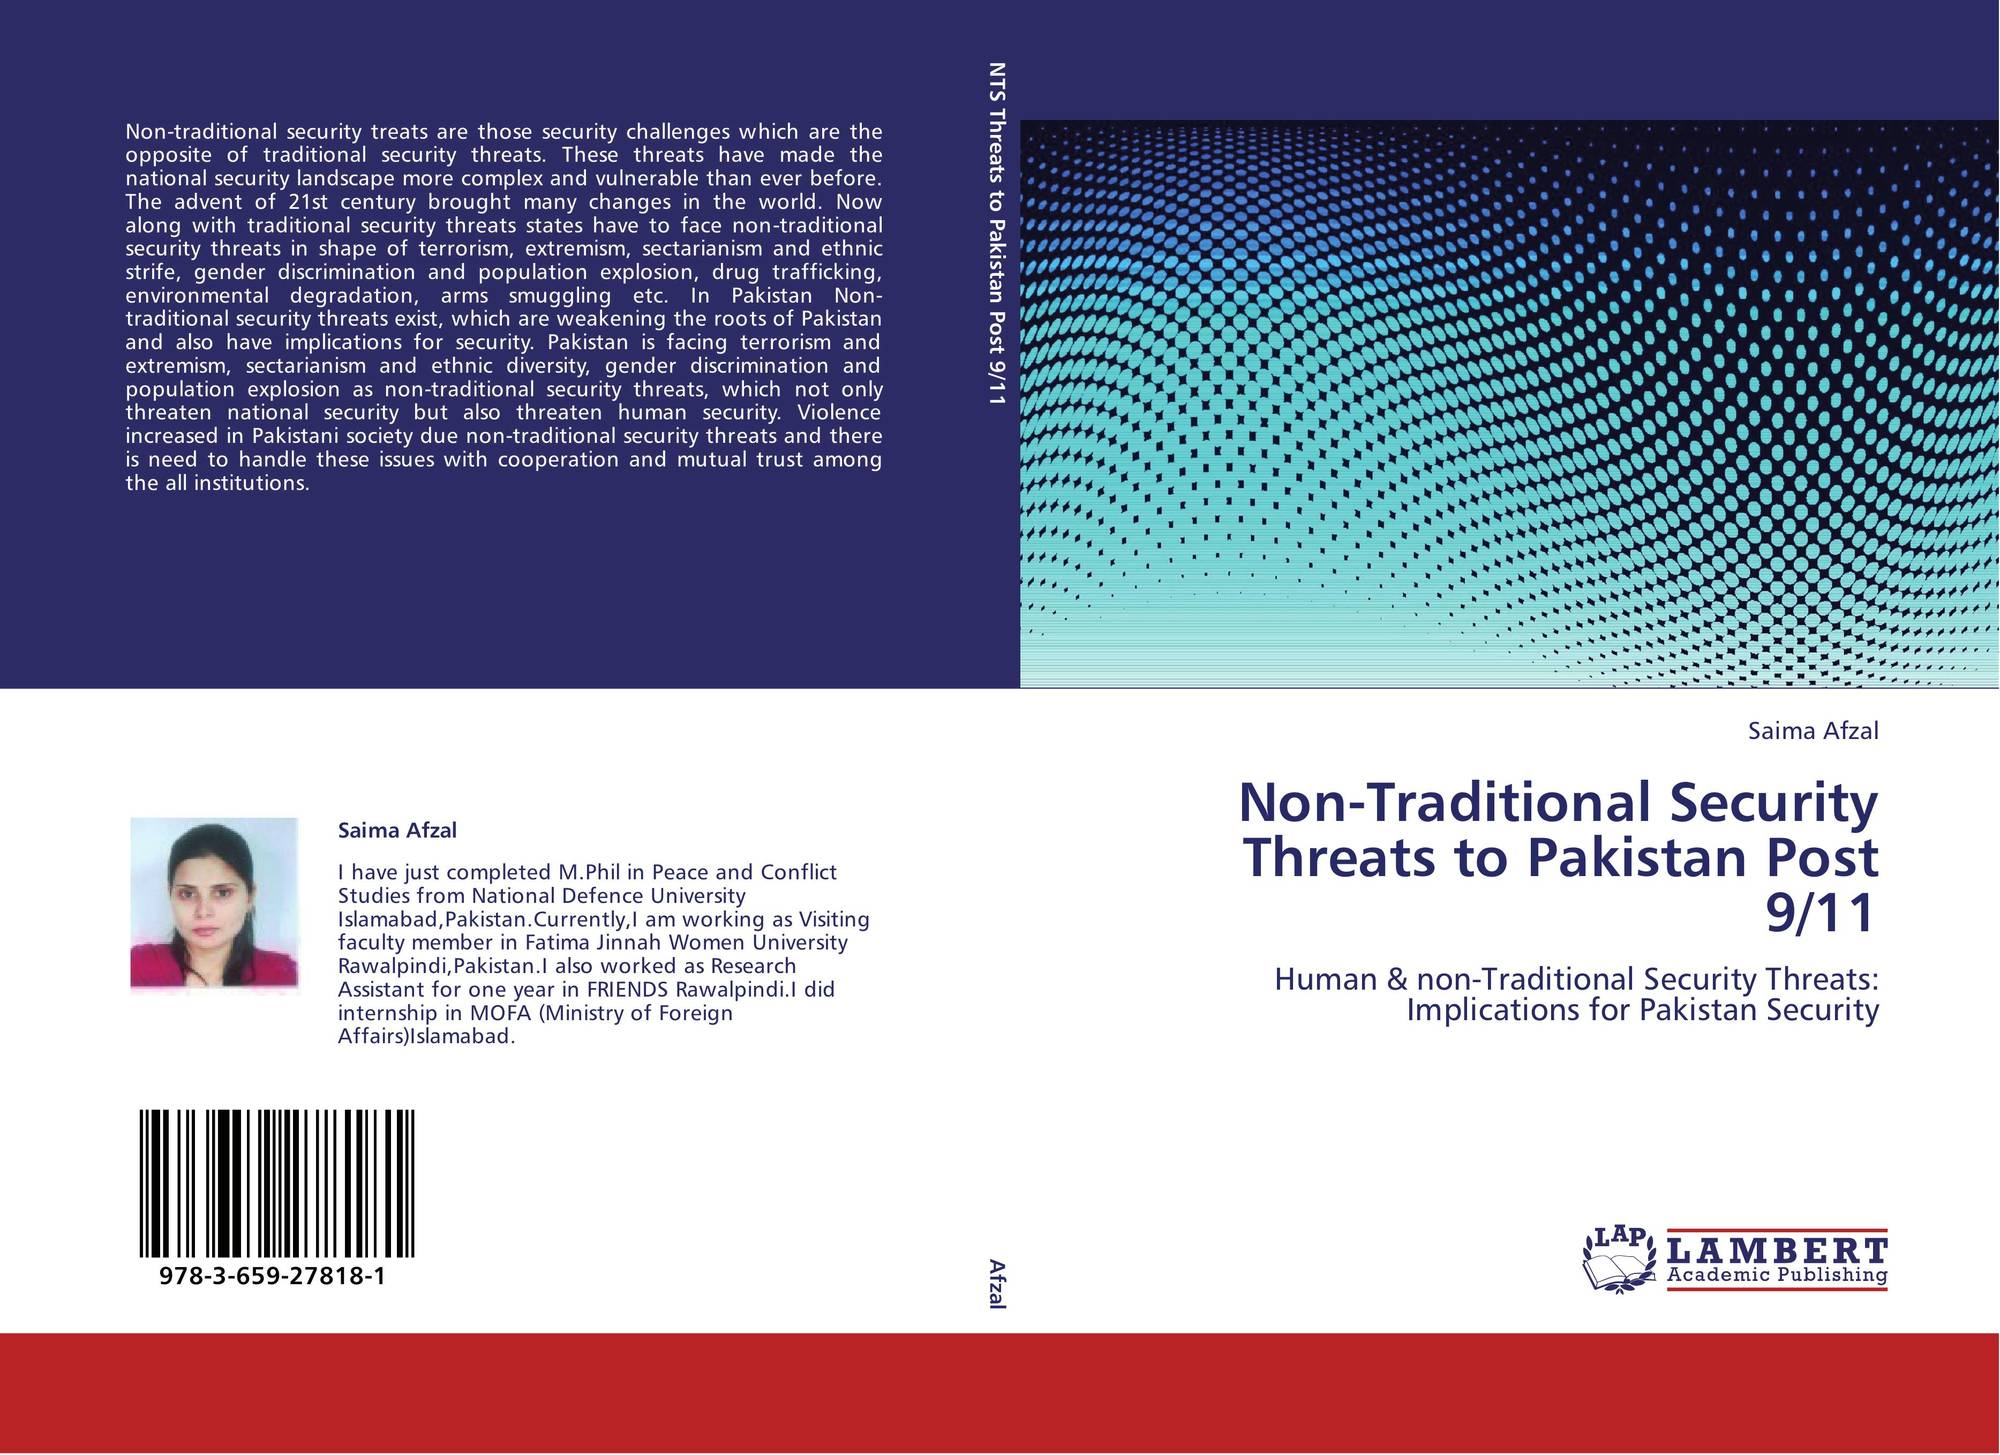 Non-Traditional Security Threats to Pakistan Post 9/11, 978-3-659